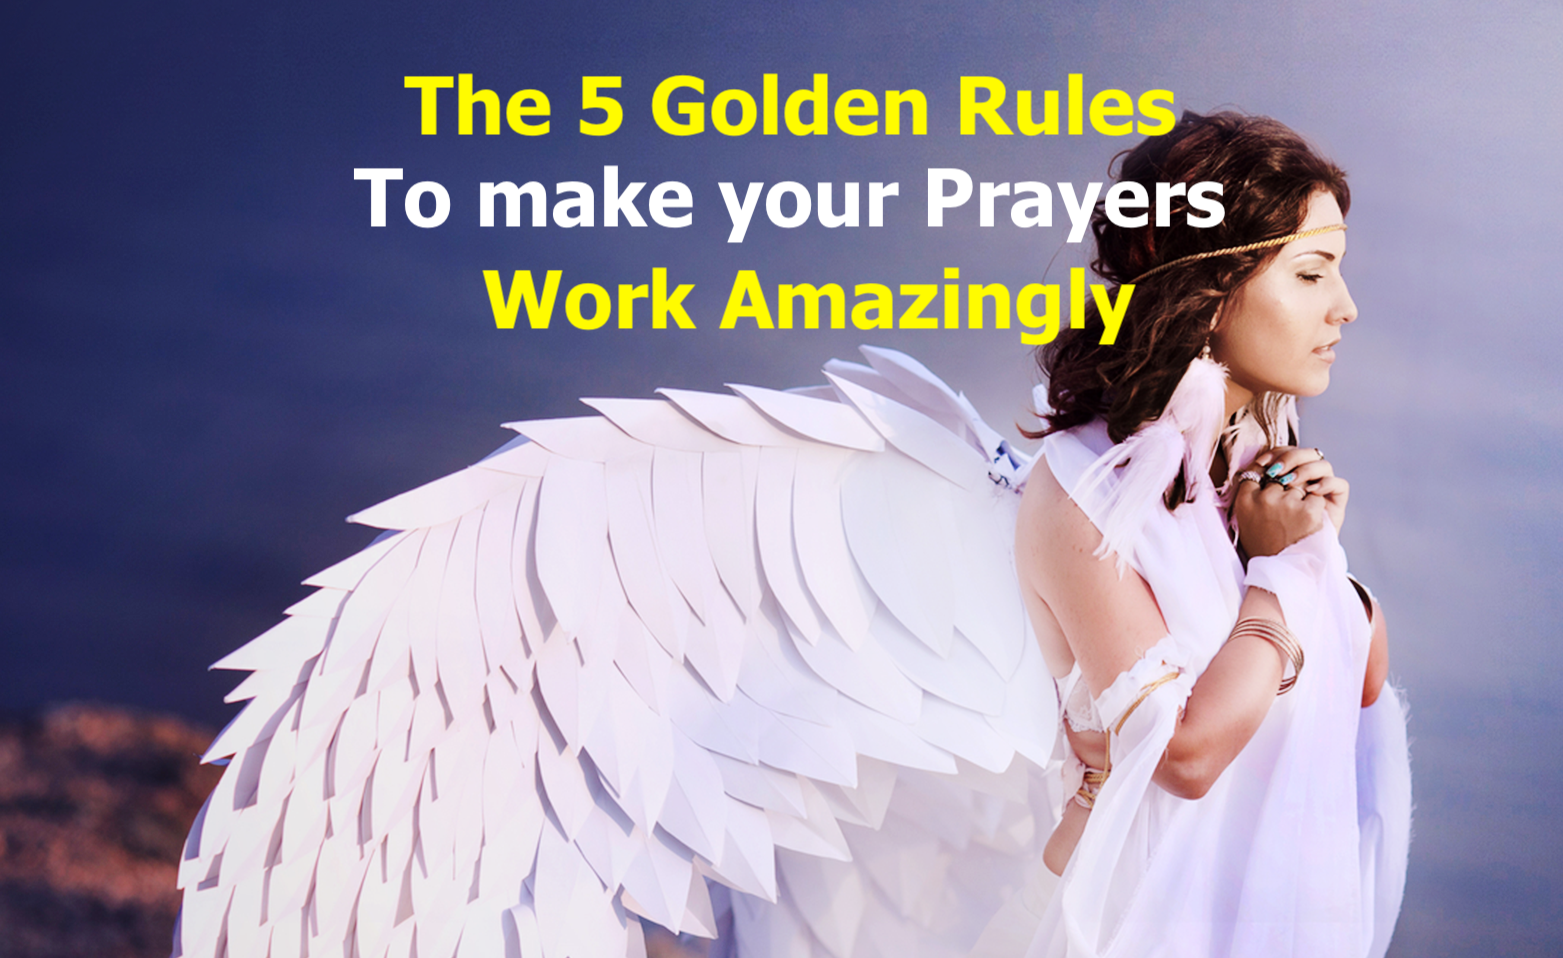 The 5 Golden Rules to make your Prayers work amazingly